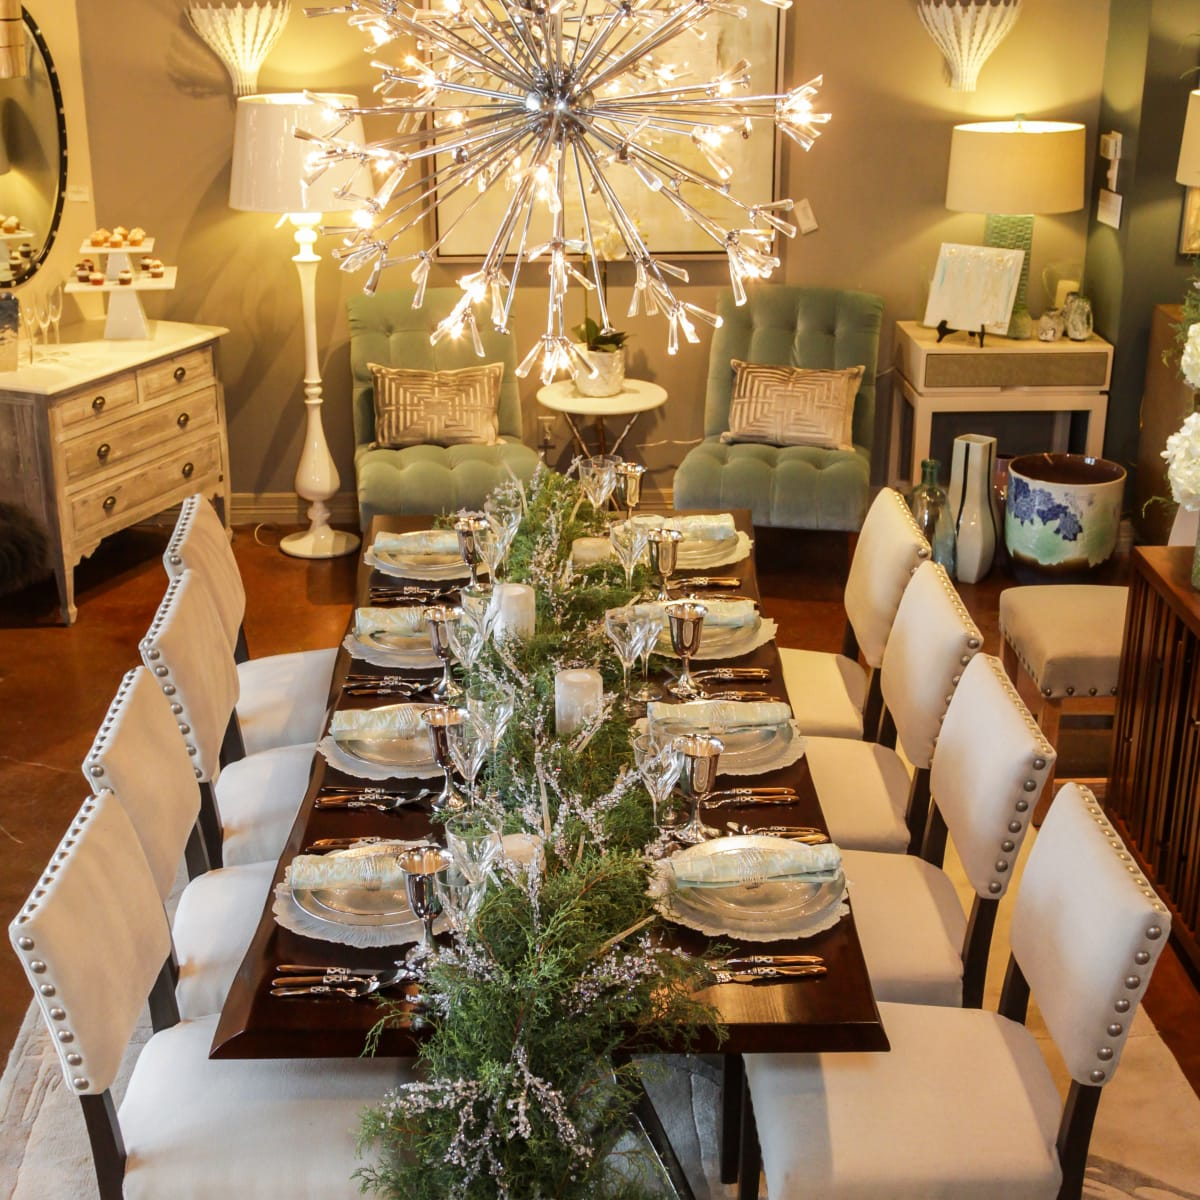 News, Houston Design Center, Deck the Tables, Dec. 2015 Design House